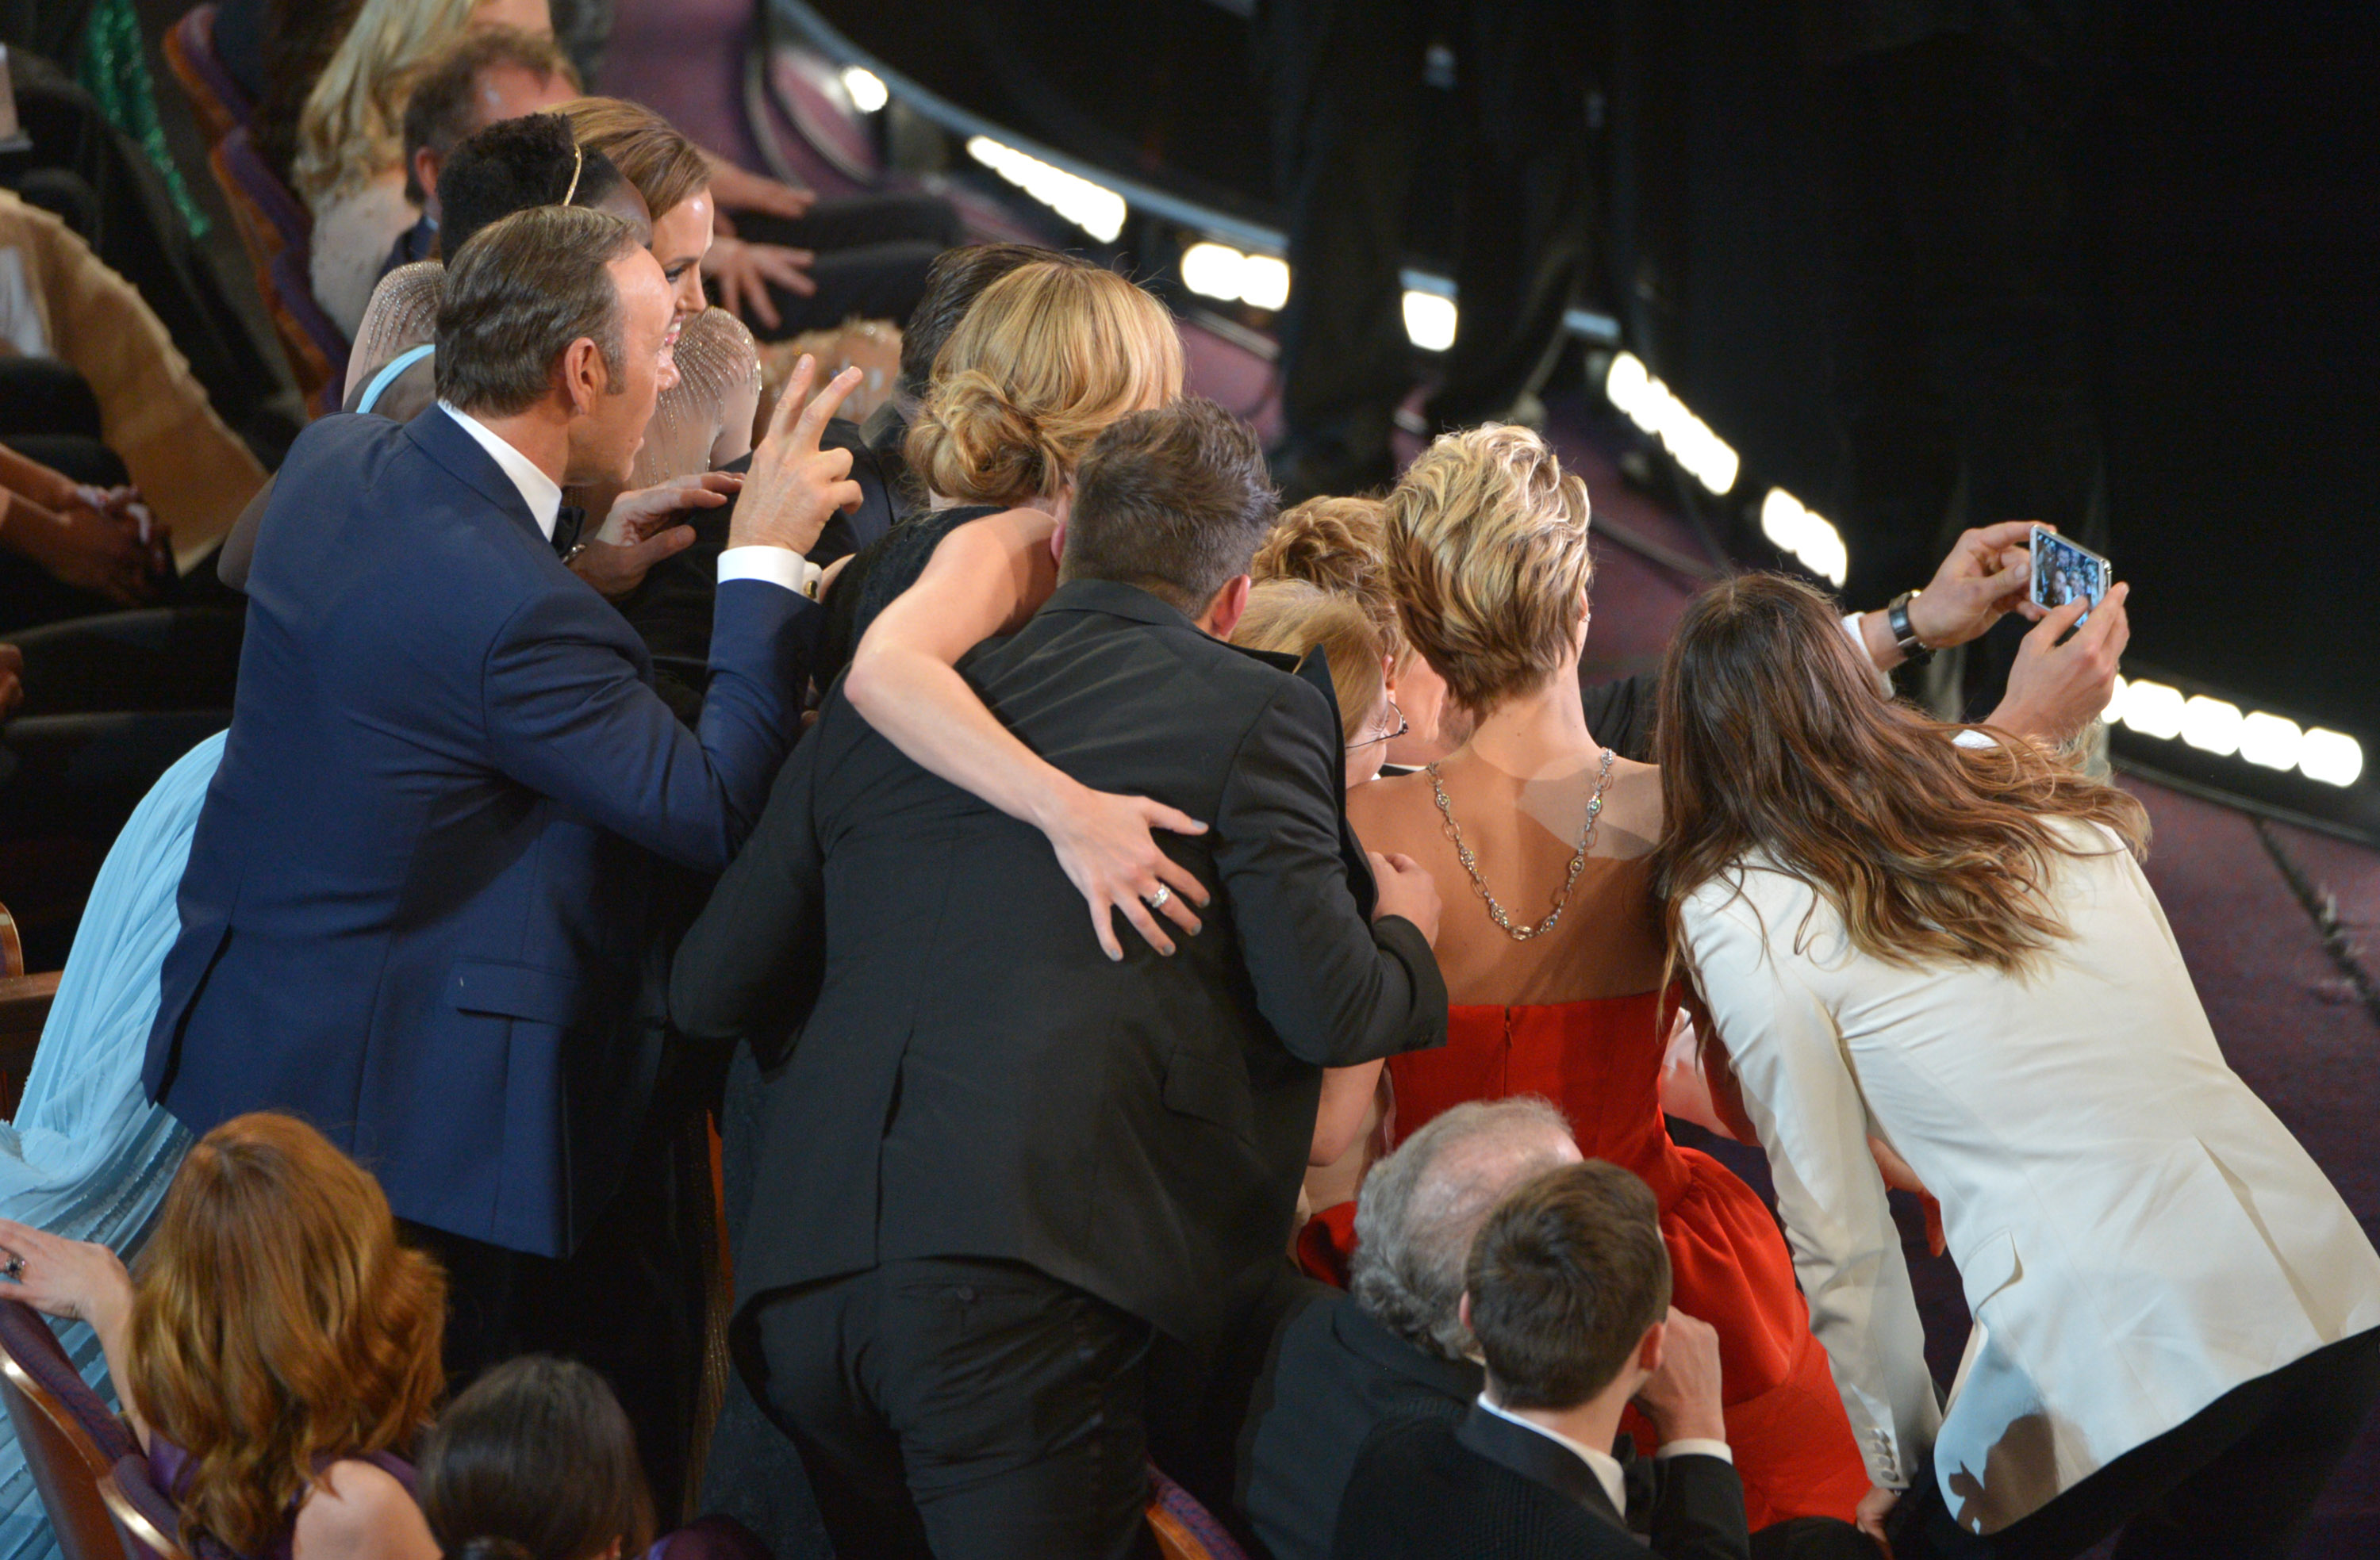 The Oscar for best selfie goes to …